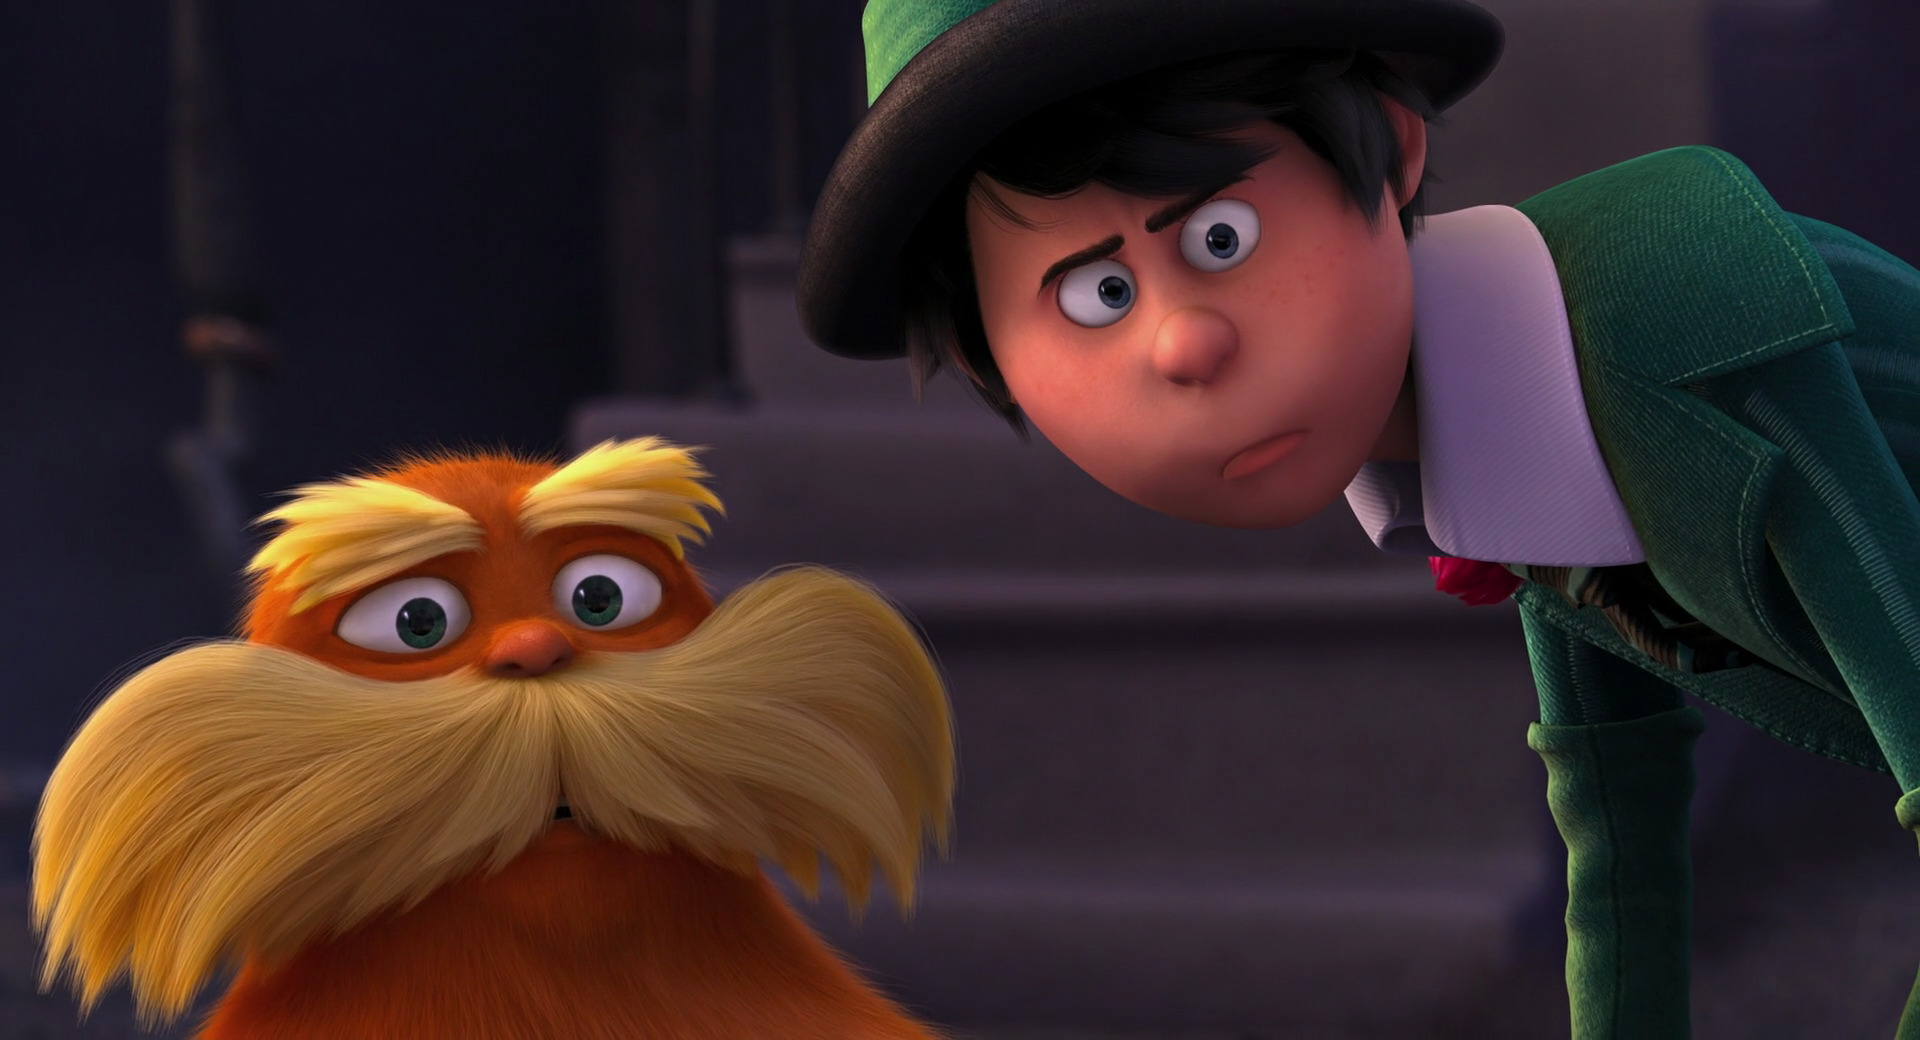 The Lorax - Dr. Seuss Would Be Proud